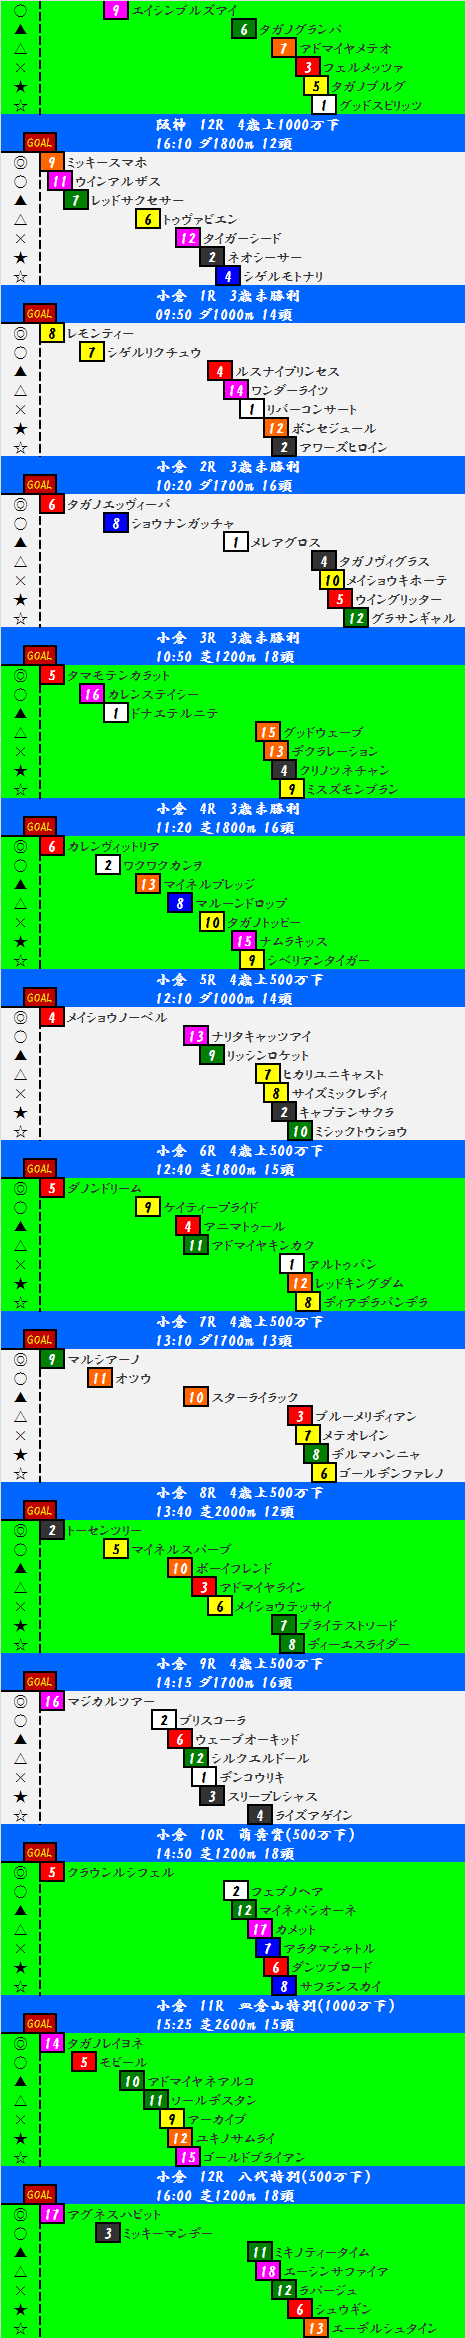 201403012.png